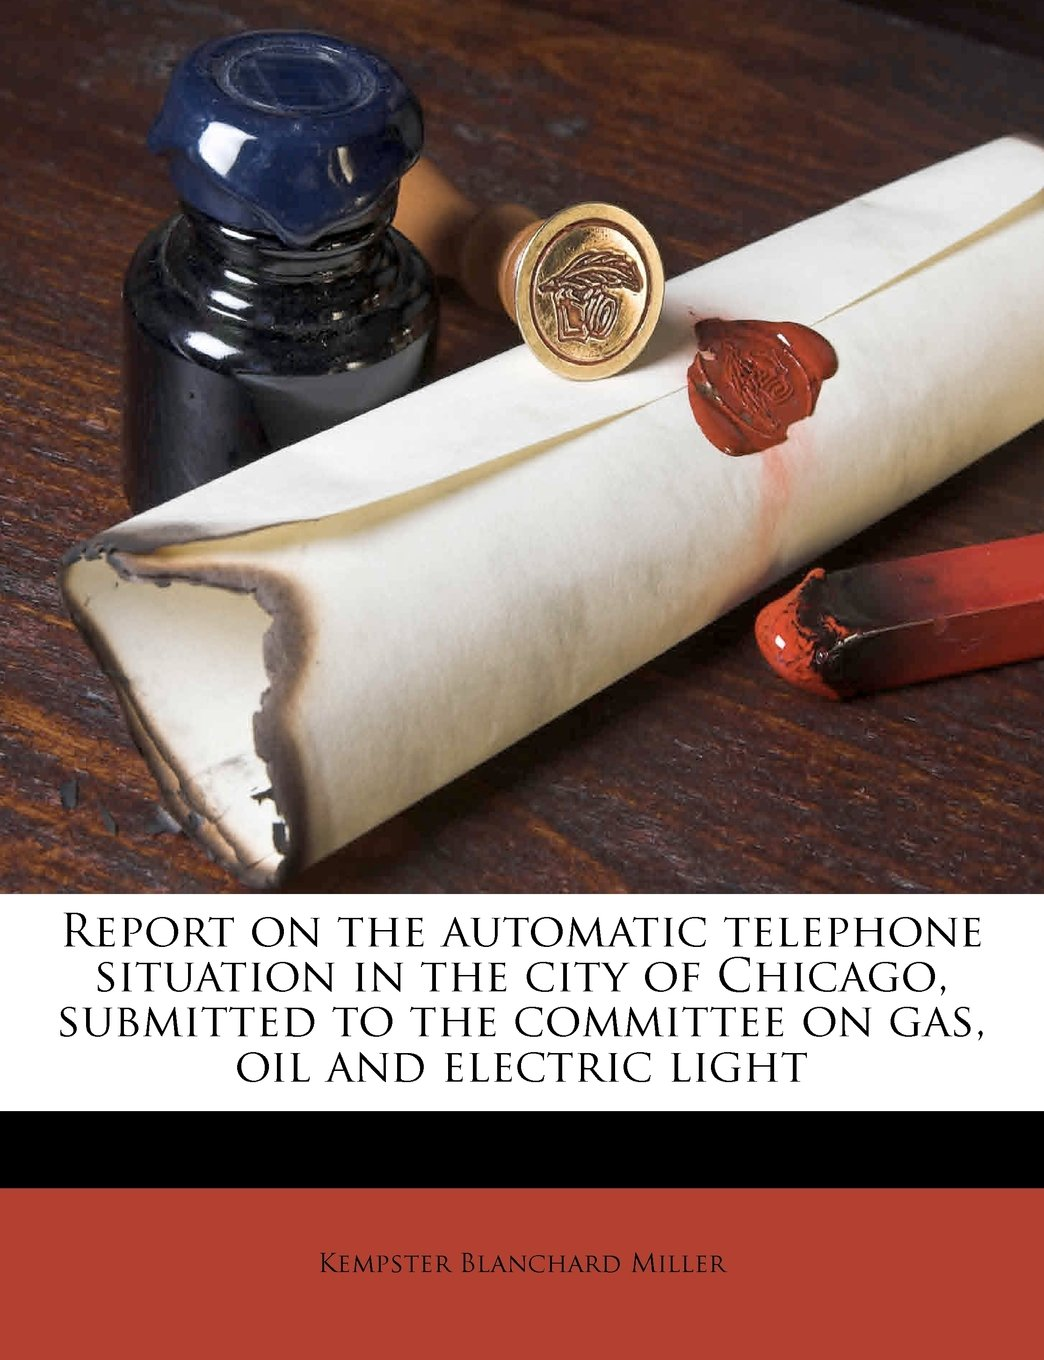 Report on the automatic telephone situation in the city of Chicago, submitted to the committee on gas, oil and electric light pdf